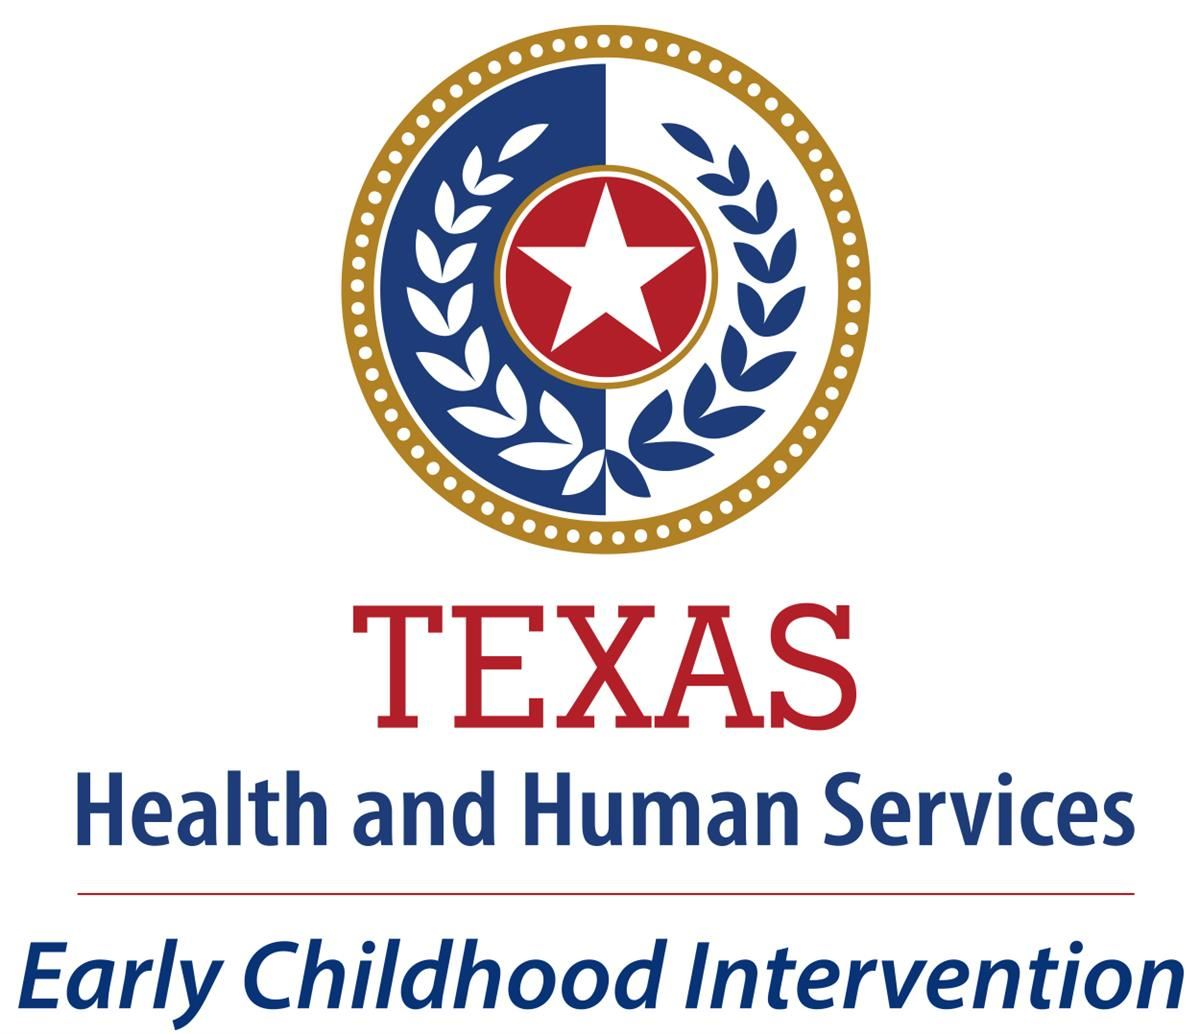 Texas HHS logo